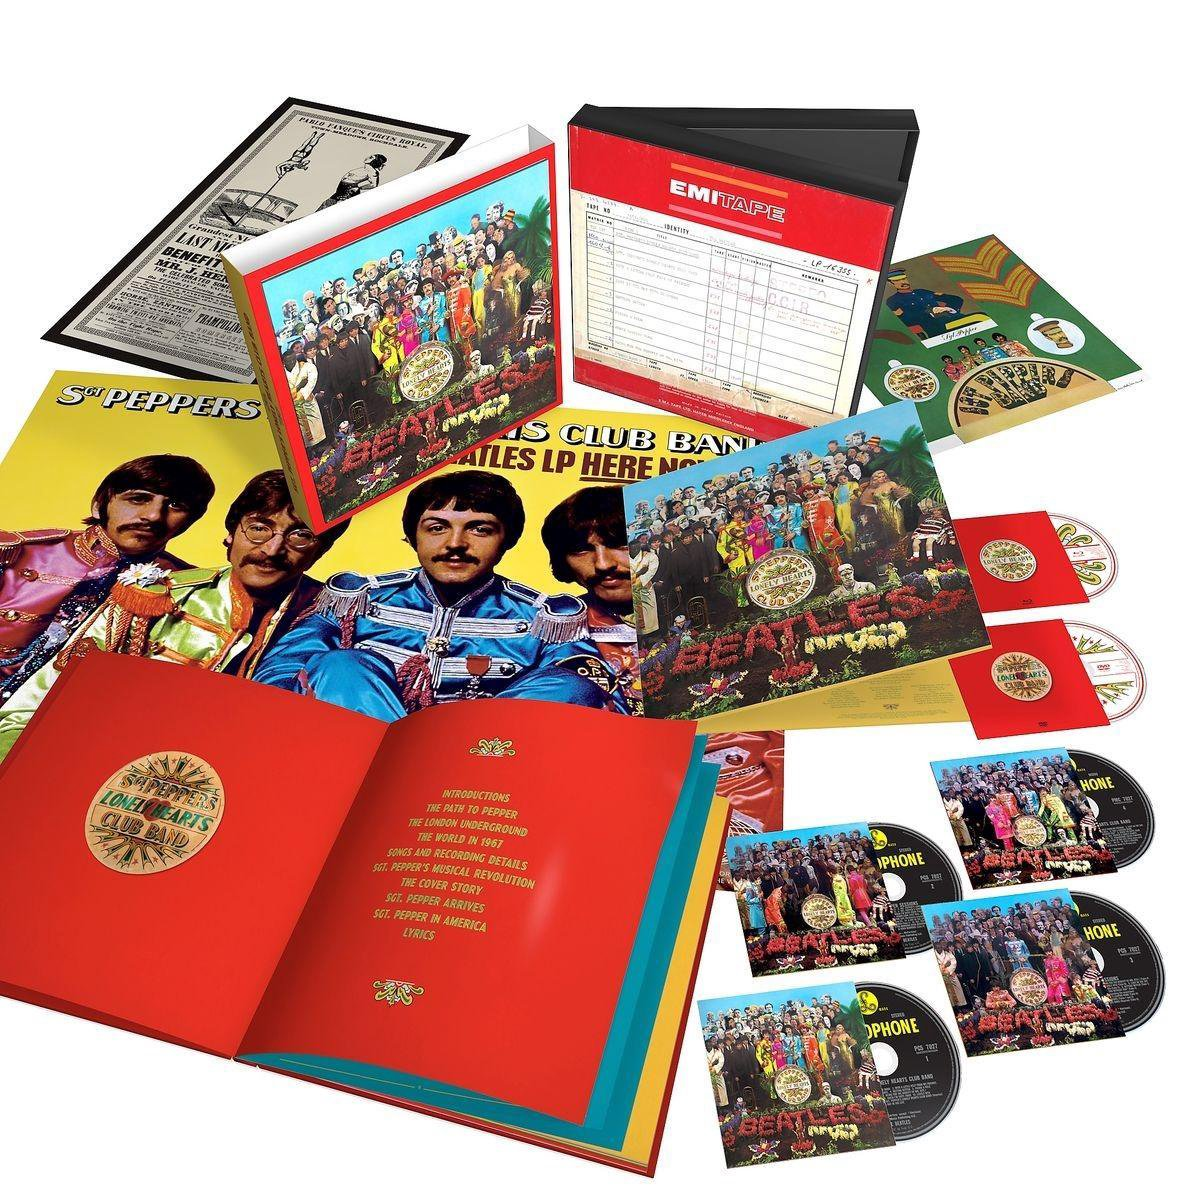 Bol Com Sgt Pepper S Lonely Hearts Club Band Anniversary Super Deluxe Edition 6 Disc The